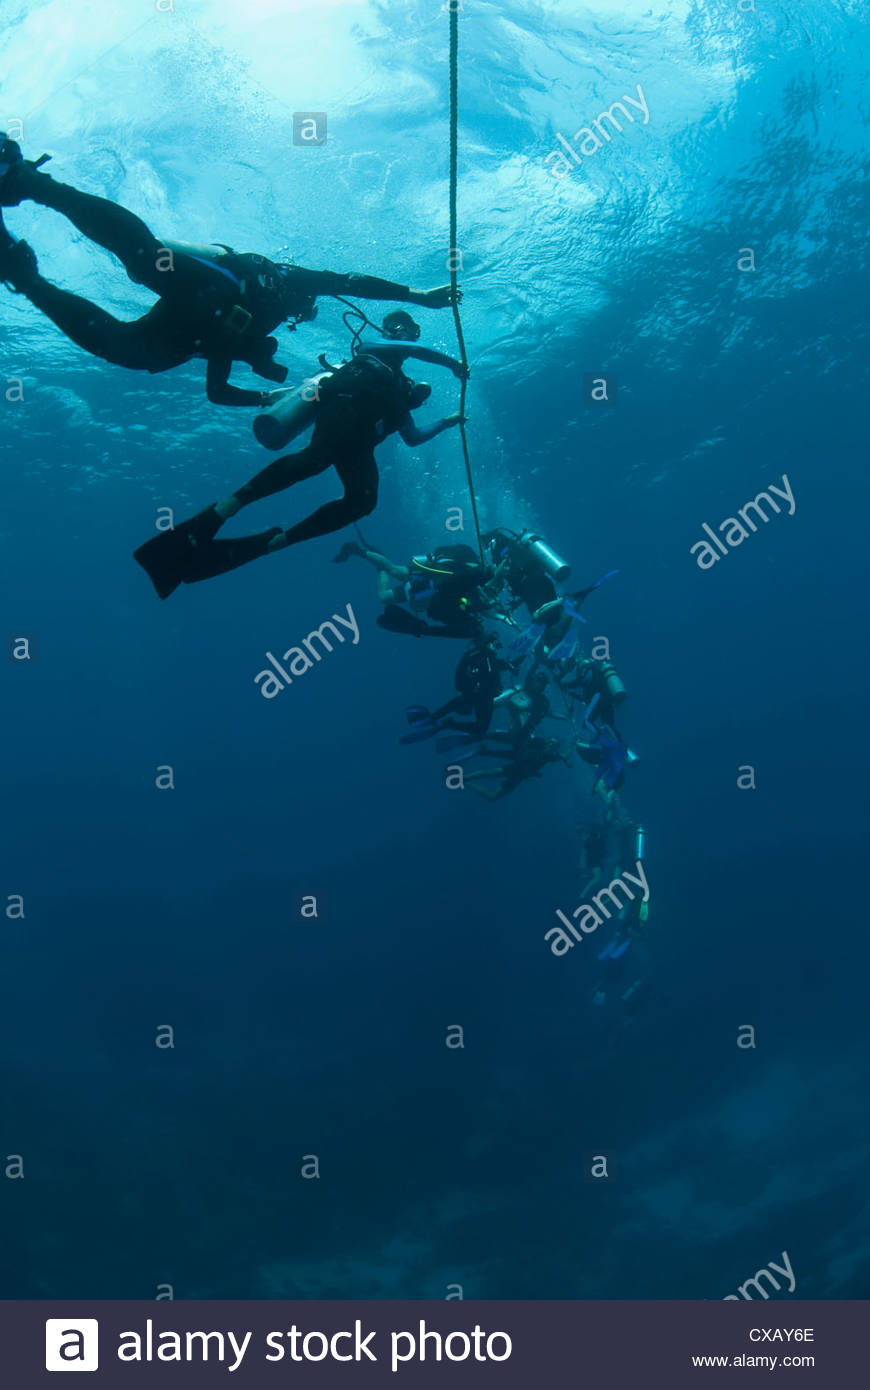 Divers following a current lile, Roatan, Bay Islands, Honduras, Caribbean, Central America - Stock Image